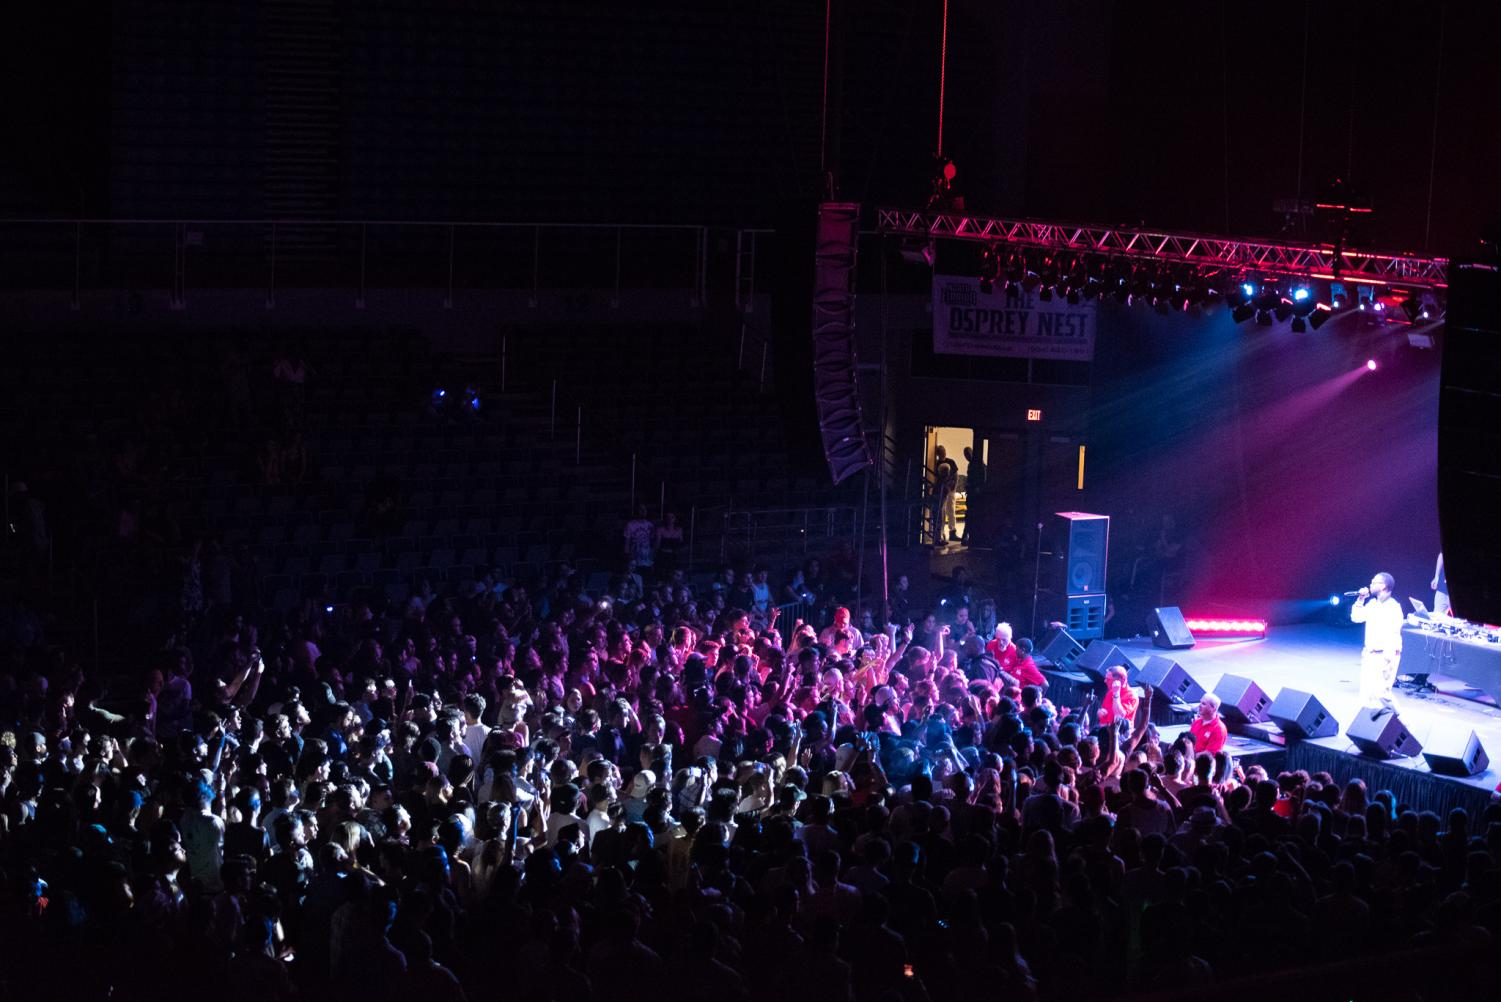 Juicy+J+sings+to+a+packed+arena%0APhoto+by+Lili+Weinstein